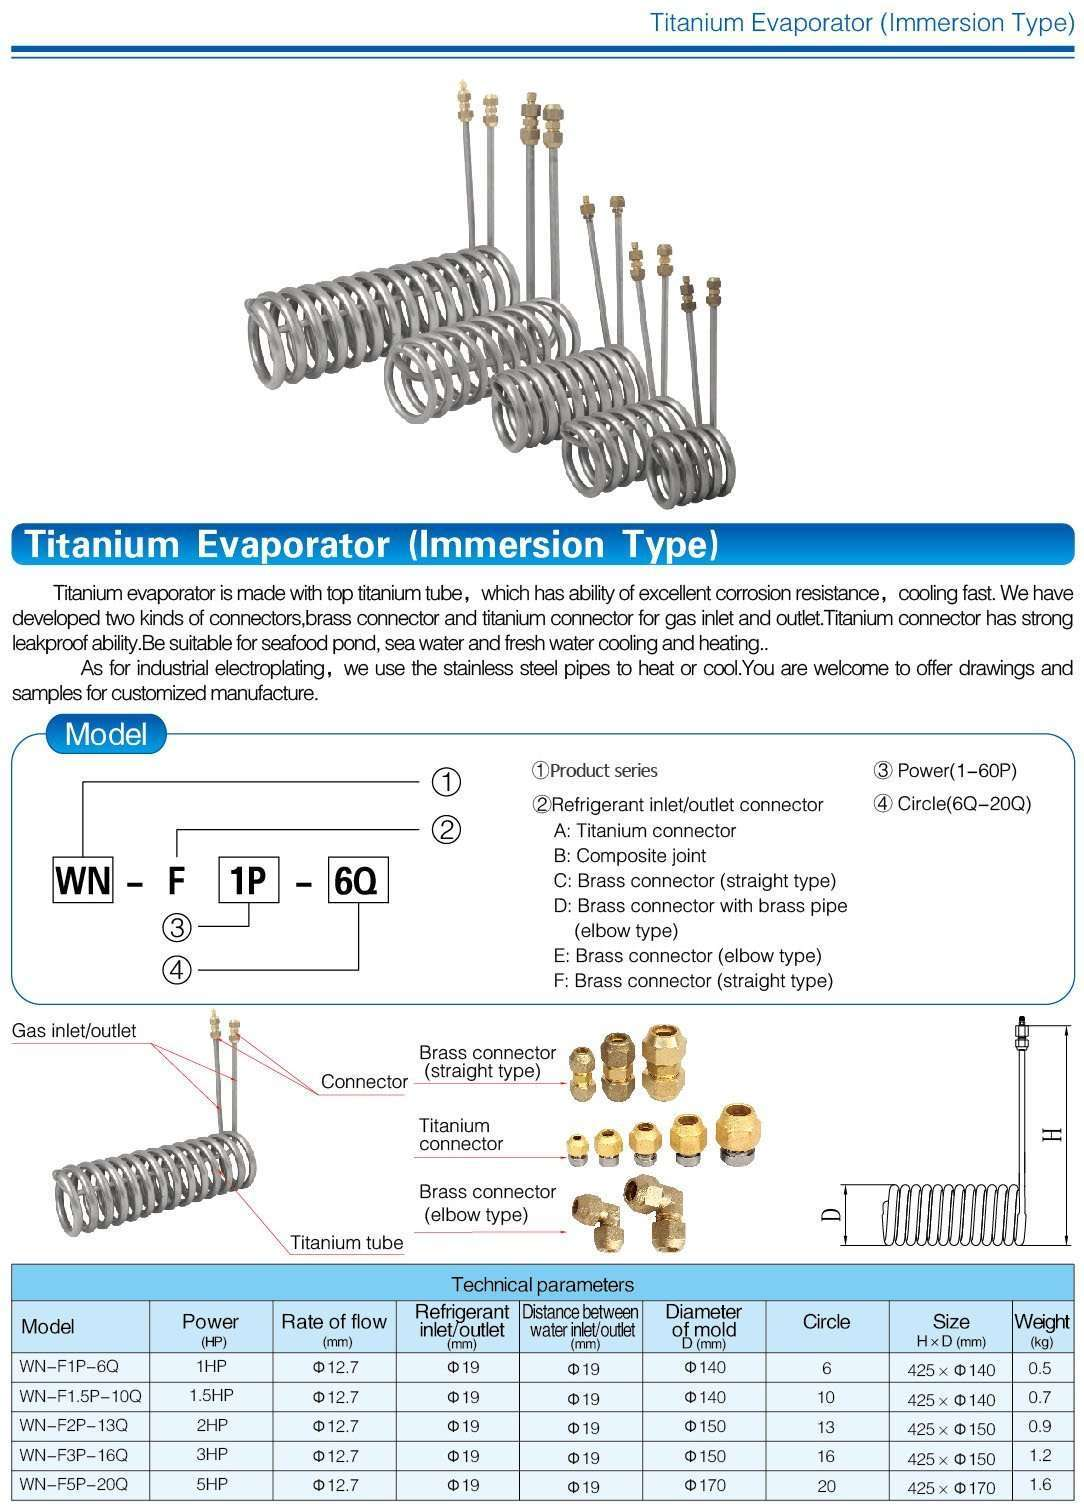 titanium coil evaporator immersion type